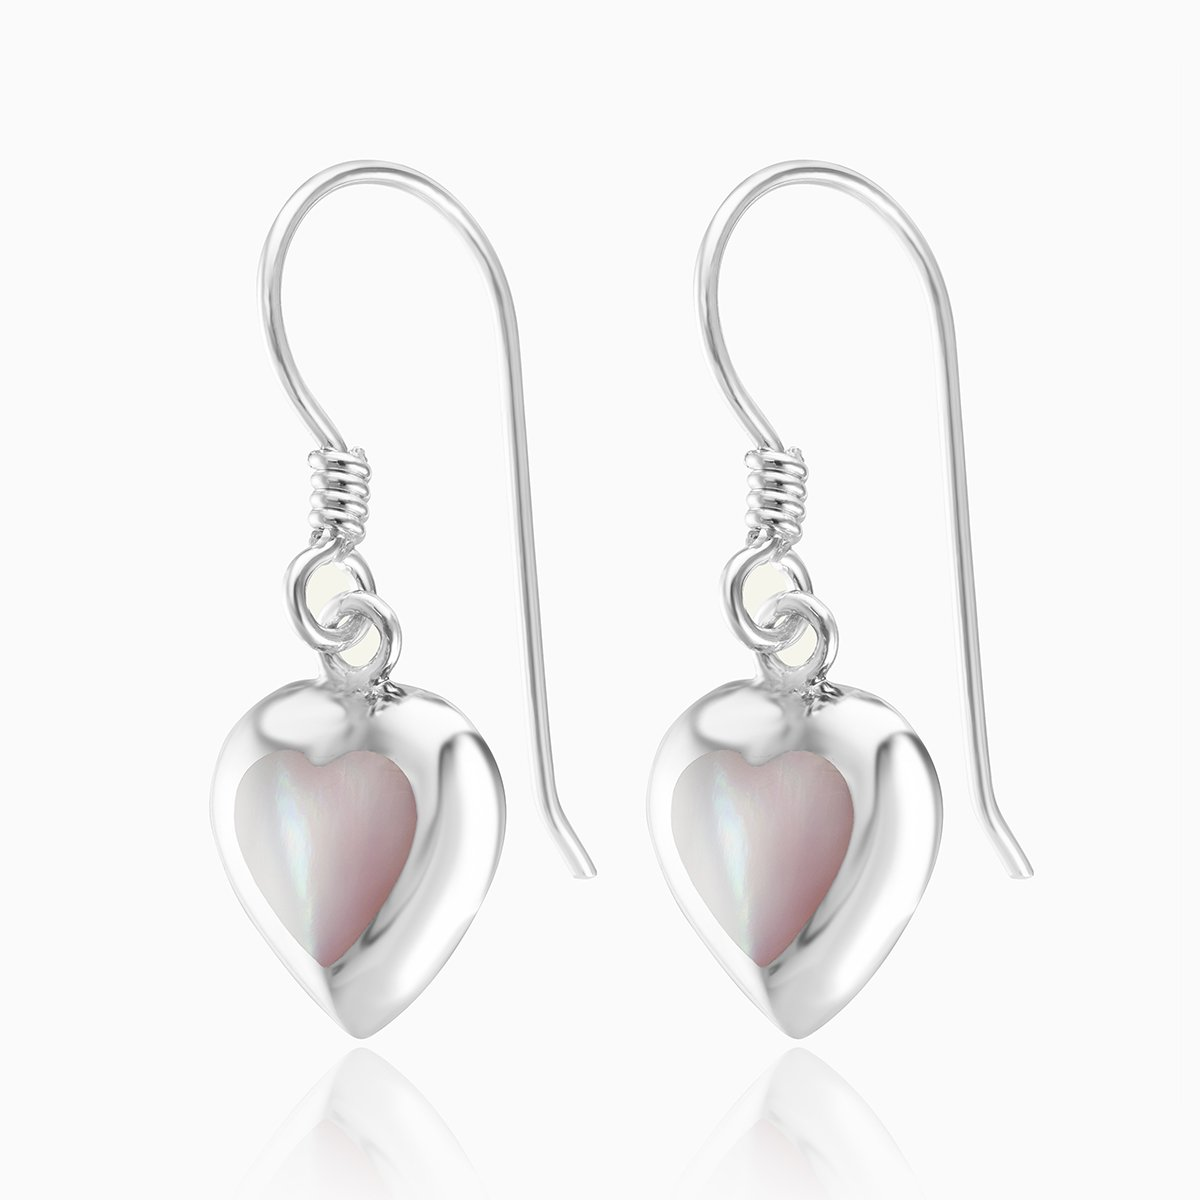 Product title: Pink Mother of Pearl Drop Heart Earrings, product type: Earrings